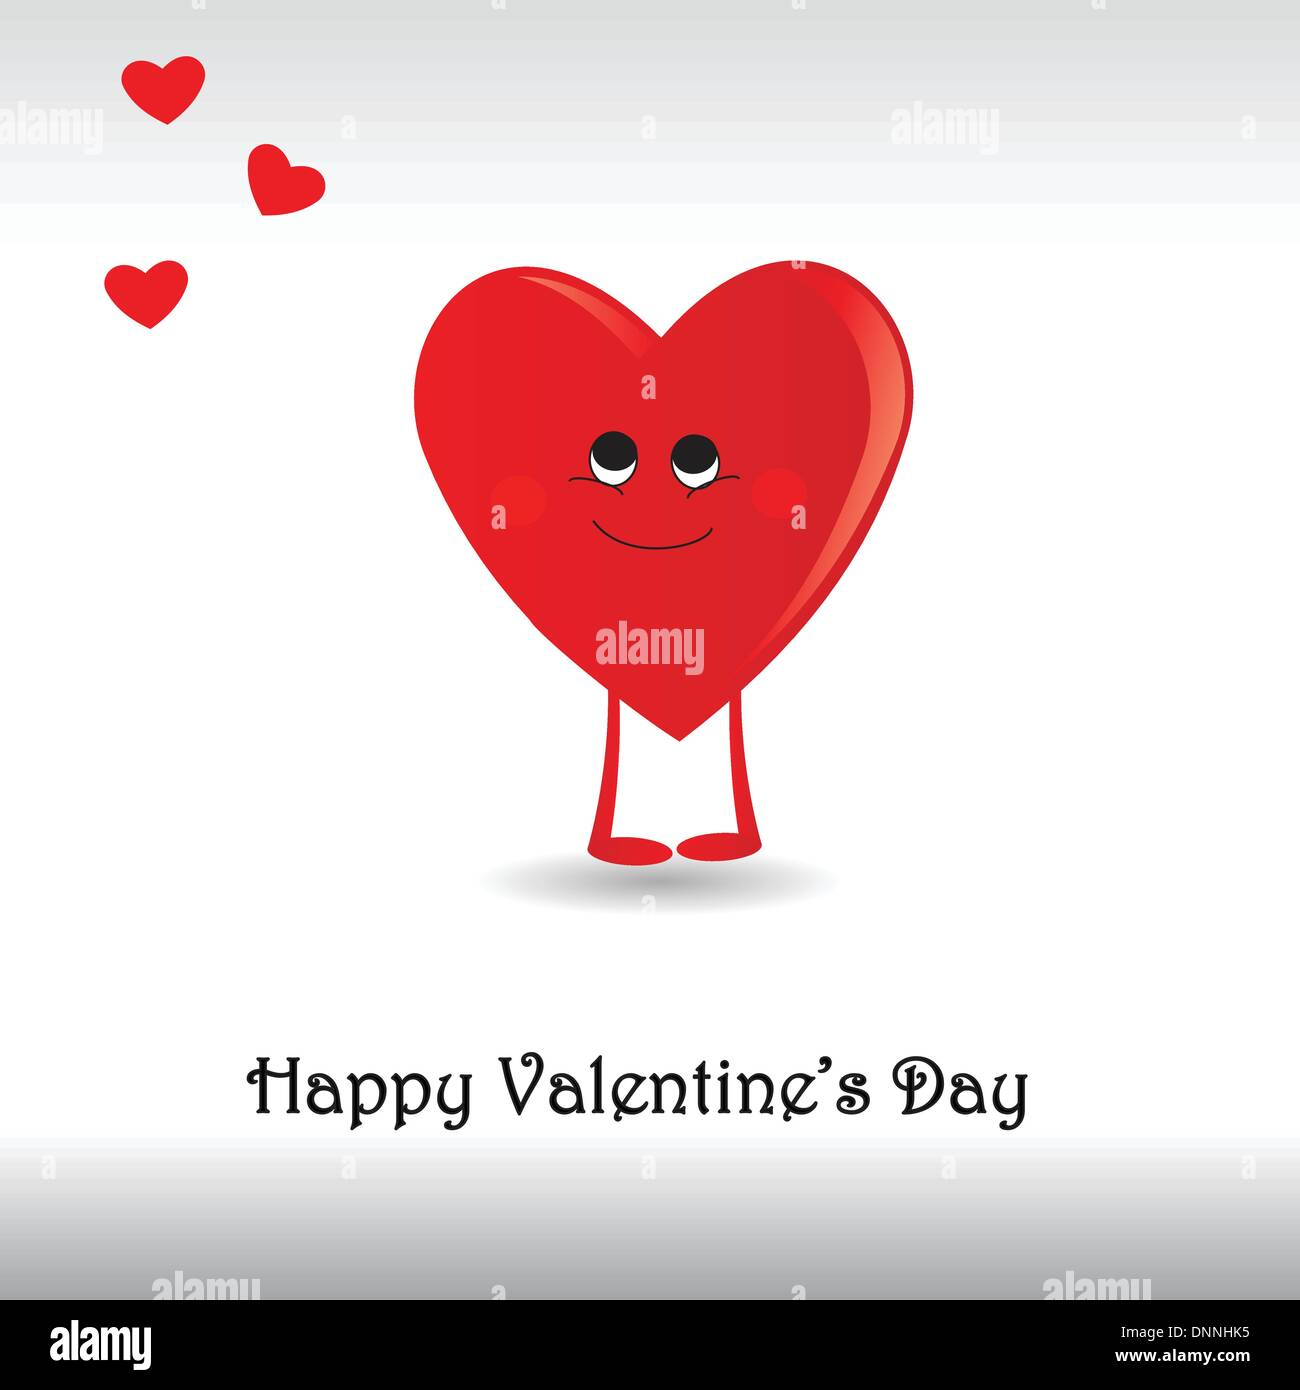 Funny Card With Hearts On Valentines Day Stock Vector Art